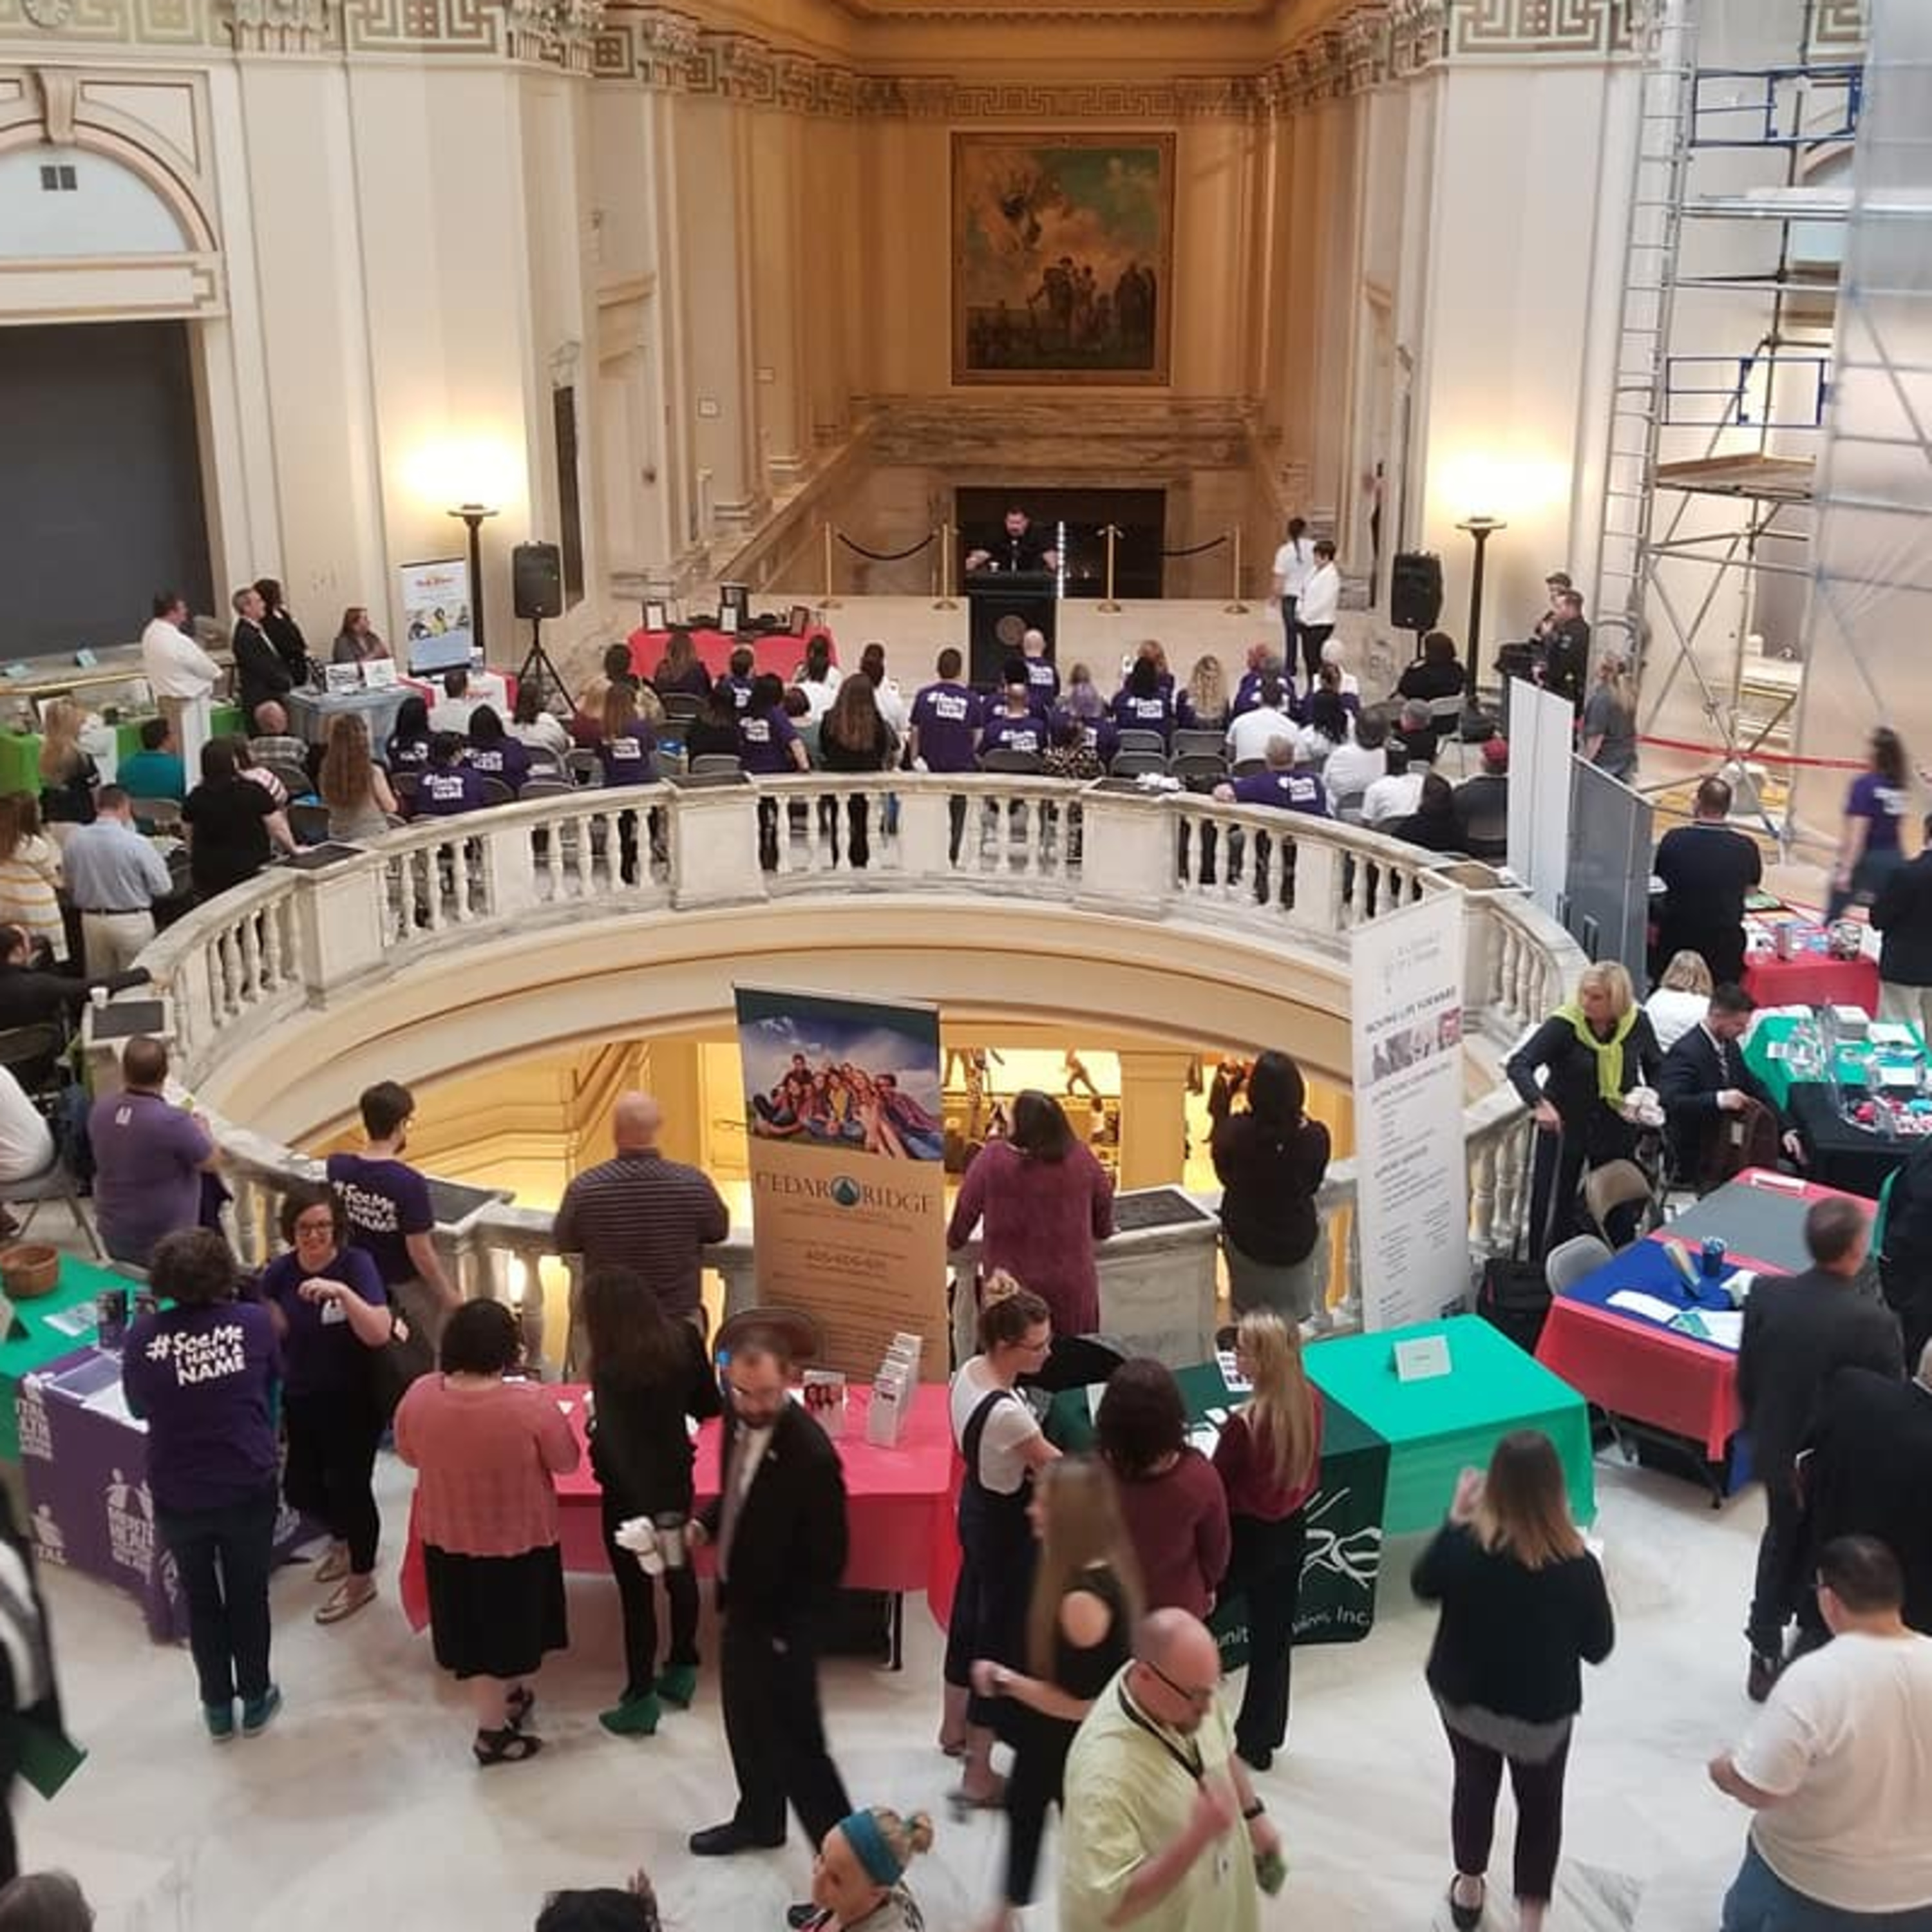 Mental Health Download: Exploring Mental Illness, Suicide, Homelessness and Incarceration - Highlights from the My Mind Matters Rally at the Capitol